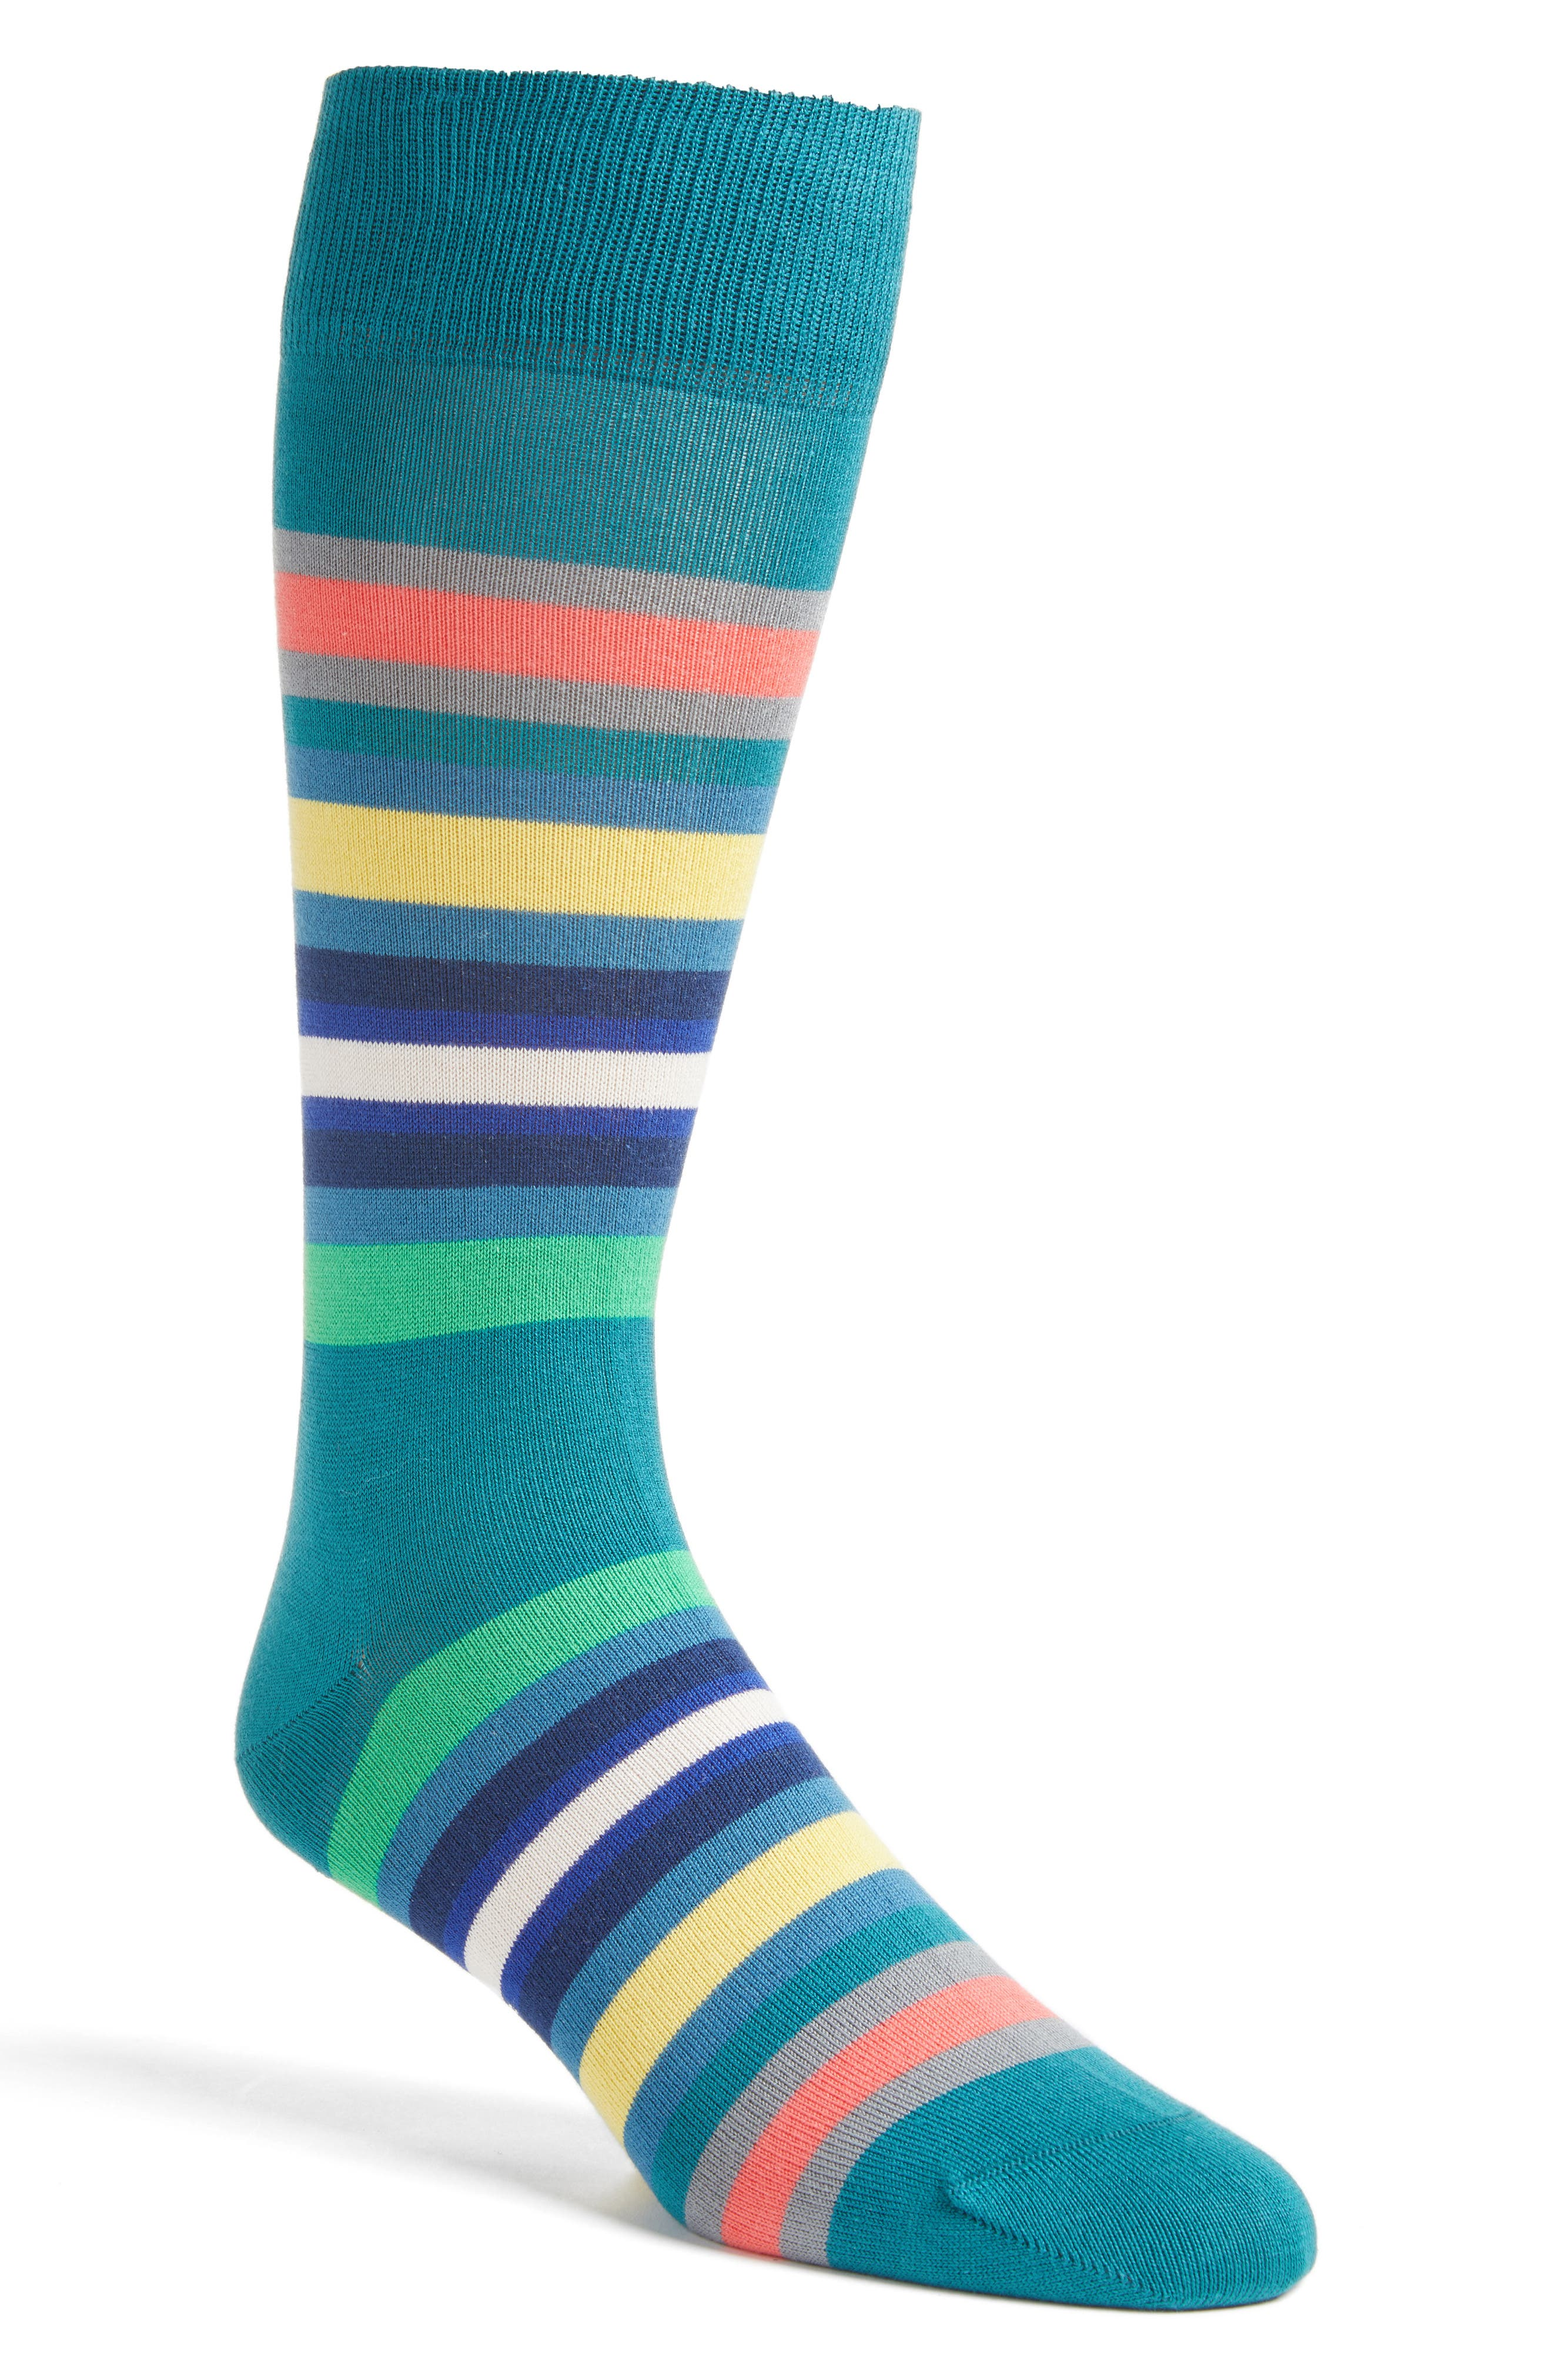 Paul Smith Kew Stripe Crew Socks